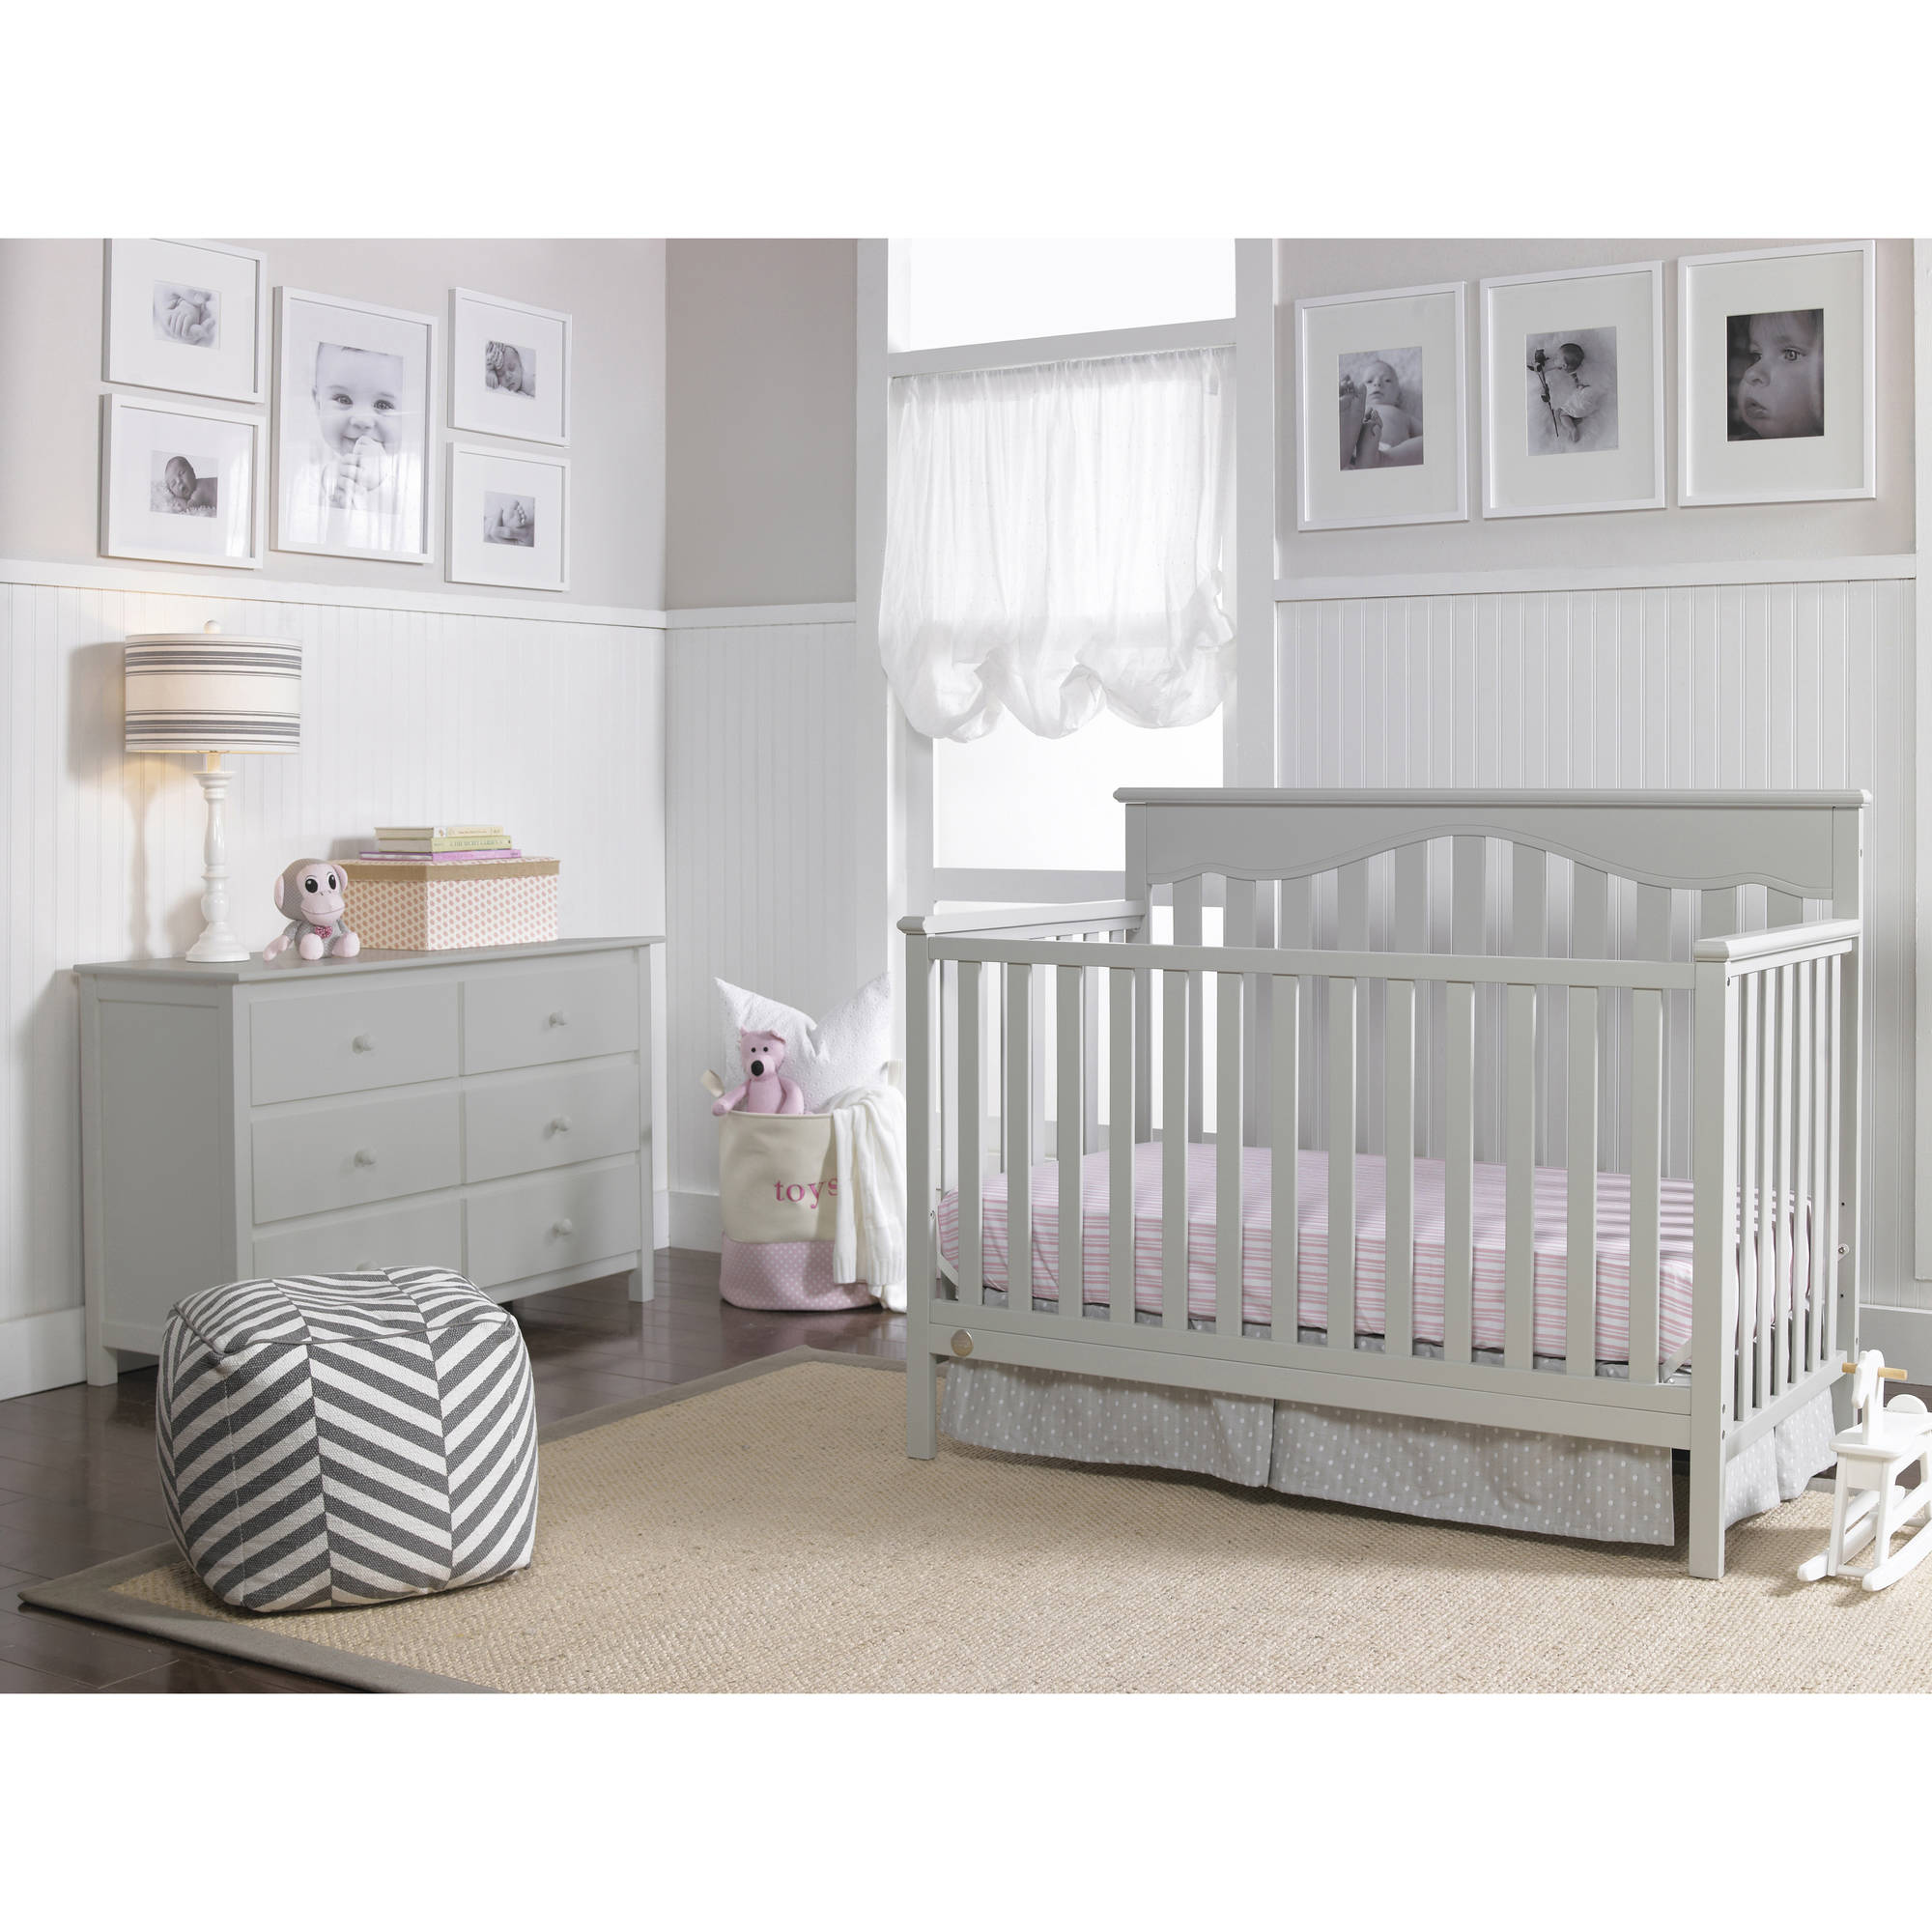 Fisher-Price Ayden 4-in-1 Fixed-Side Convertible Crib, (Choose Your Finish)